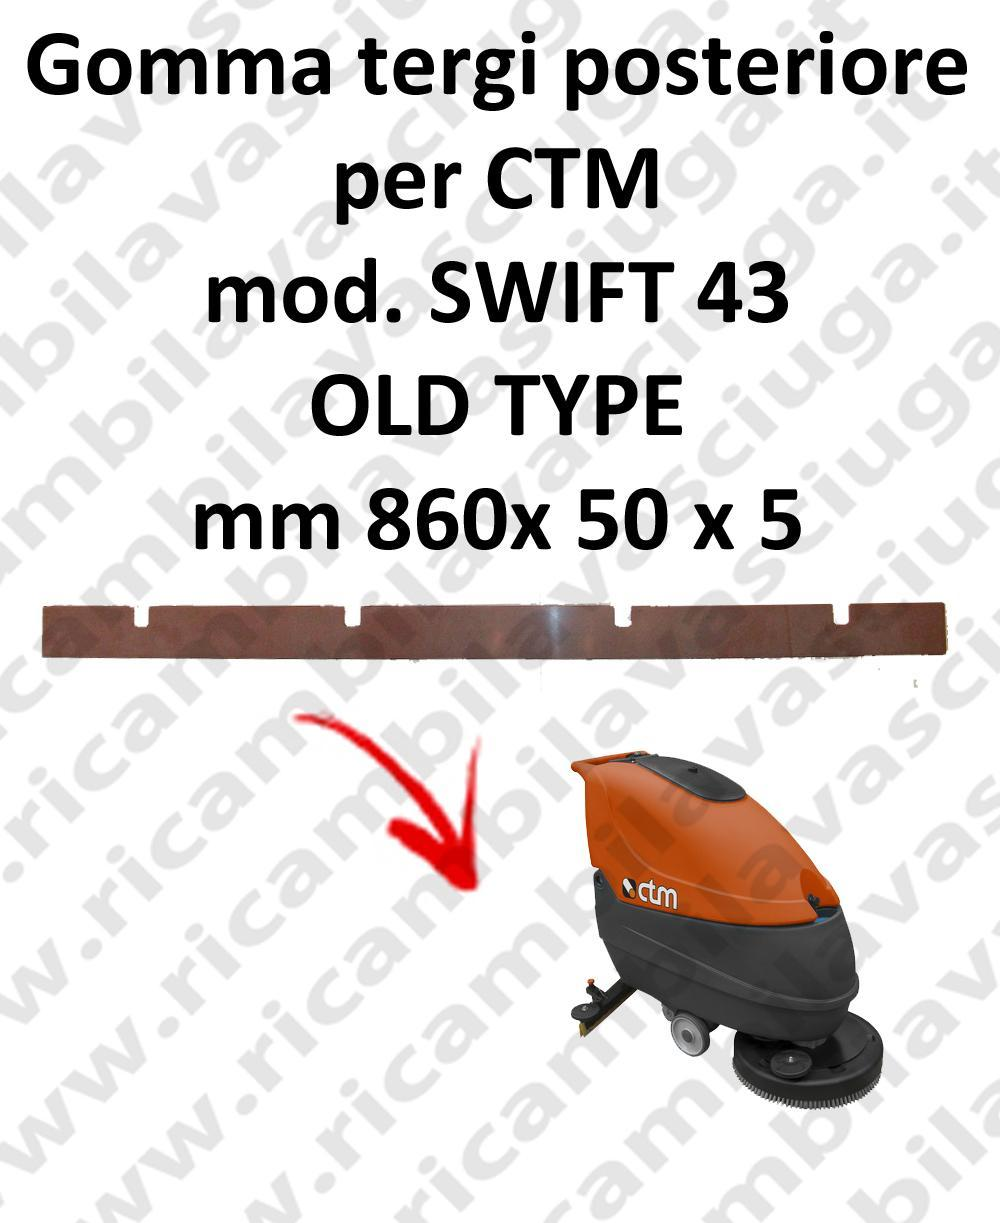 SWIFT 43 OLD TYPE BAVETTE ARRIERE pour CTM